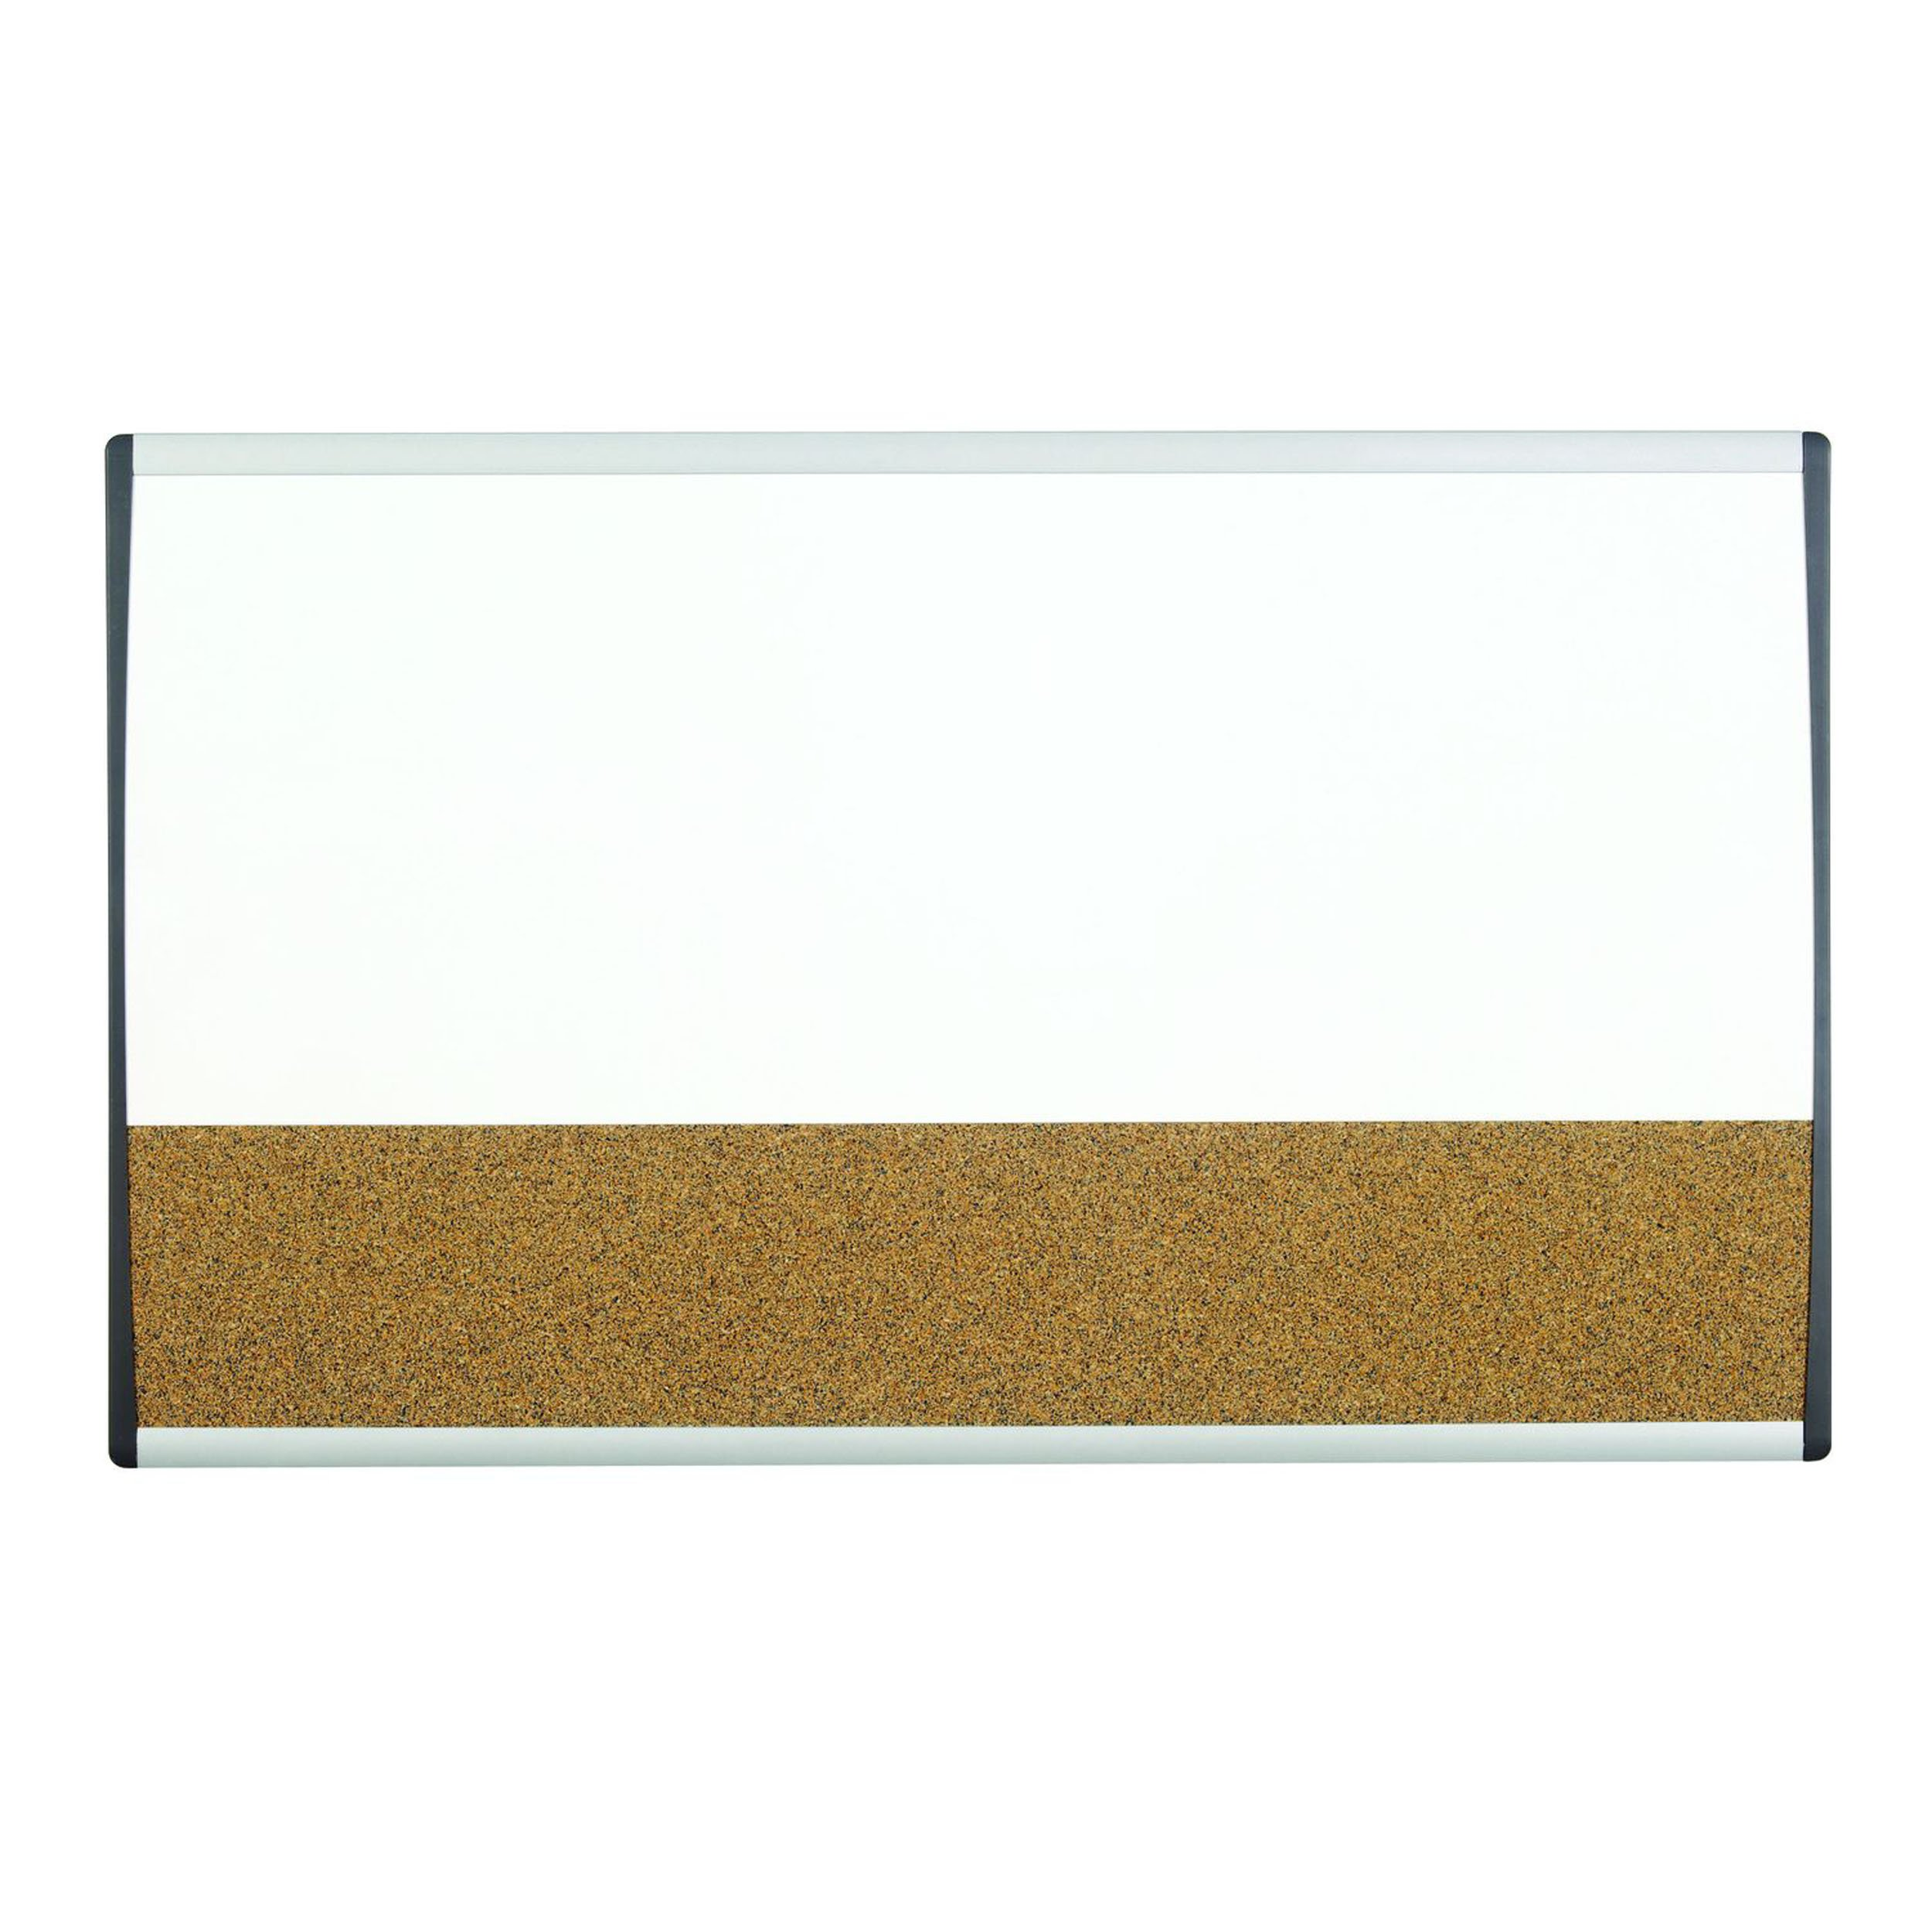 Quartet Arc Cubicle Combination Board, 30'' x 18'', Whiteboard/Cork Surface, Aluminum Frame (ARCCB3018) by Quartet